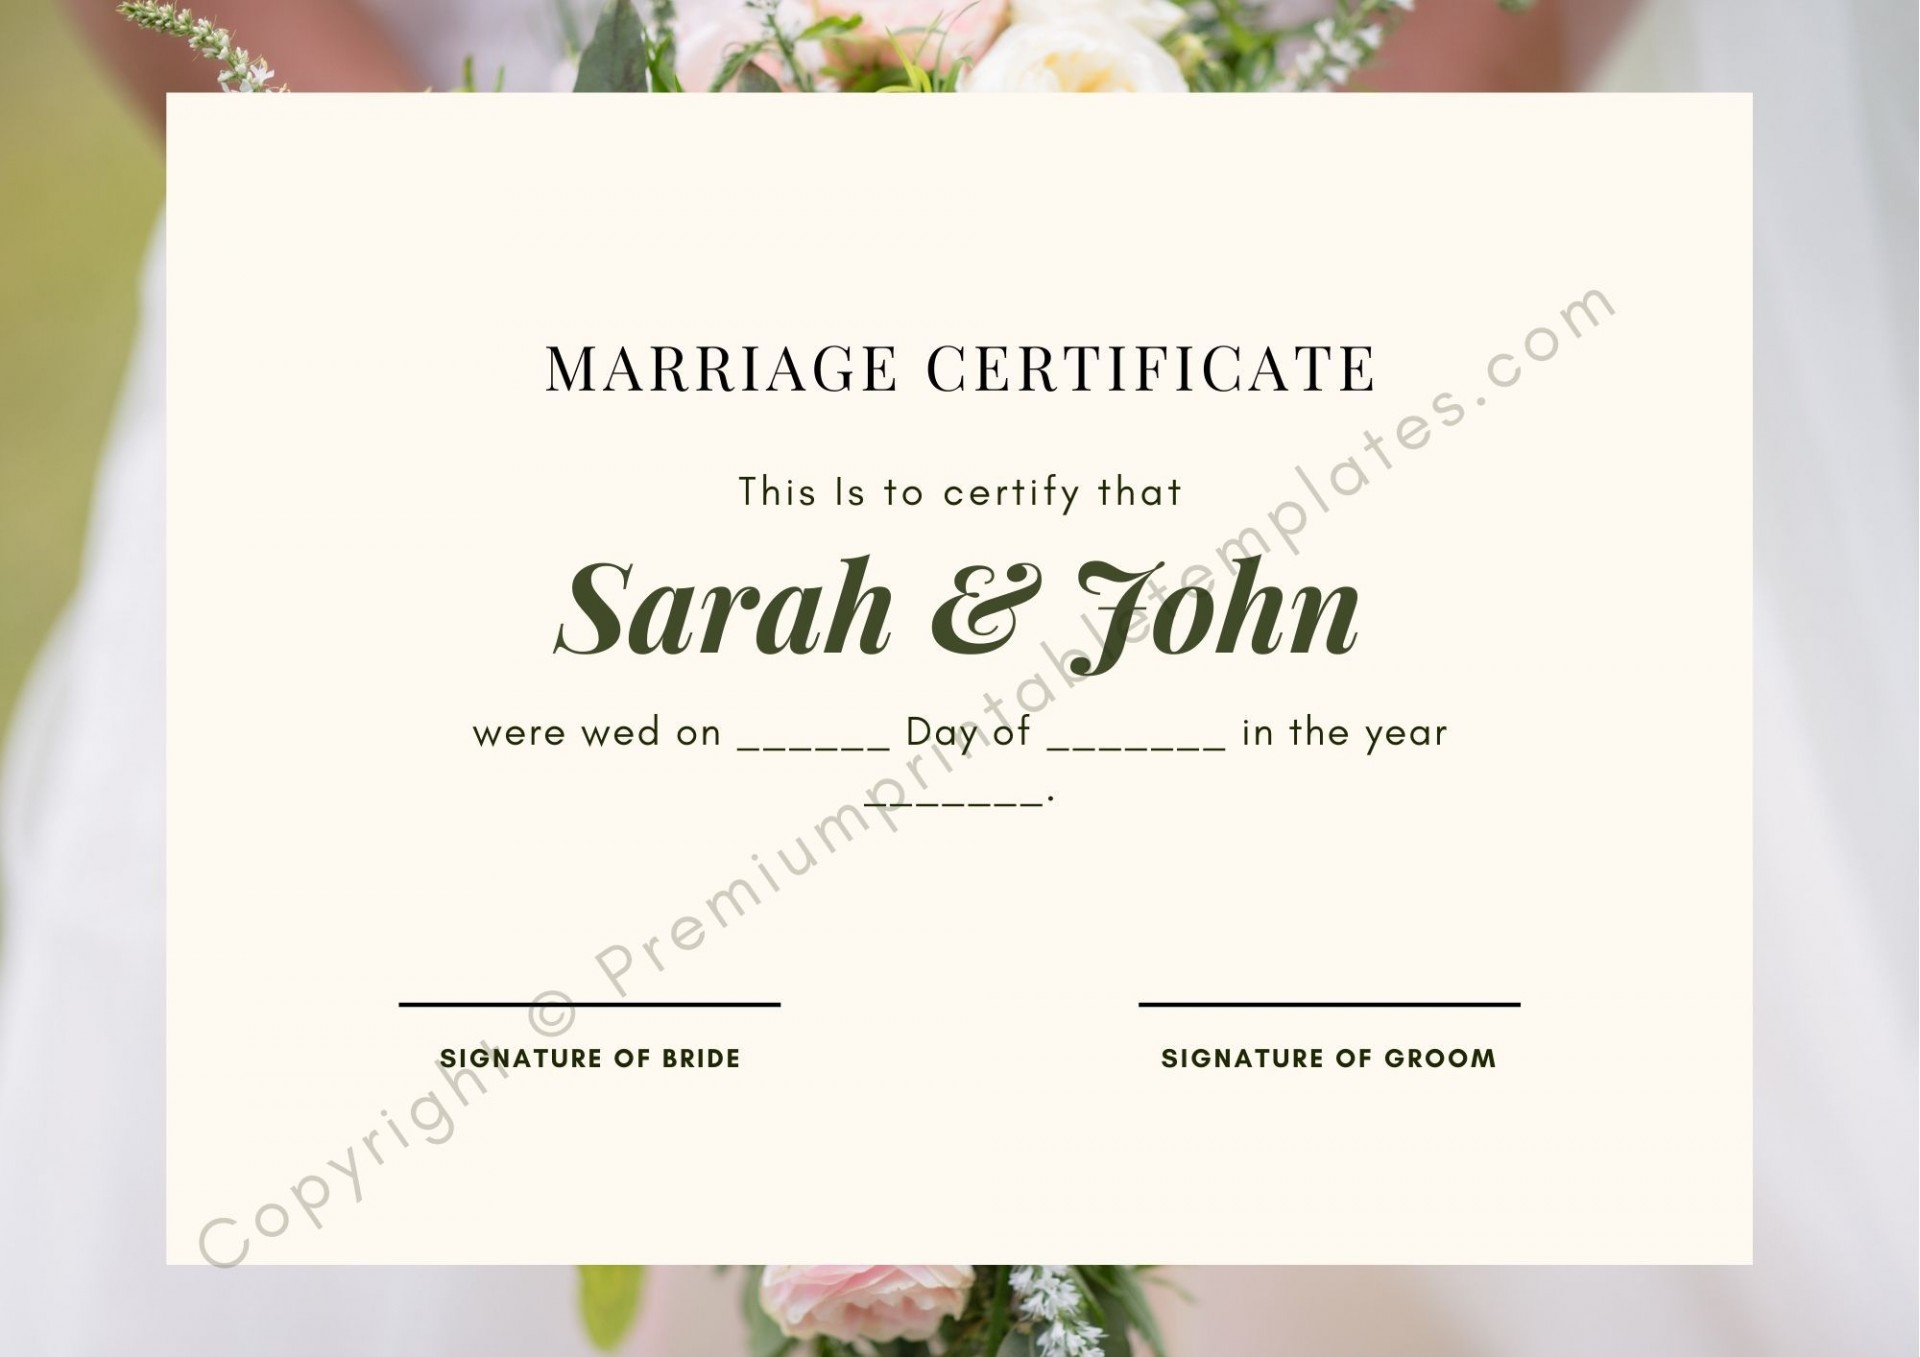 004 Marvelou Certificate Of Marriage Template Highest Quality  Word Australia1920